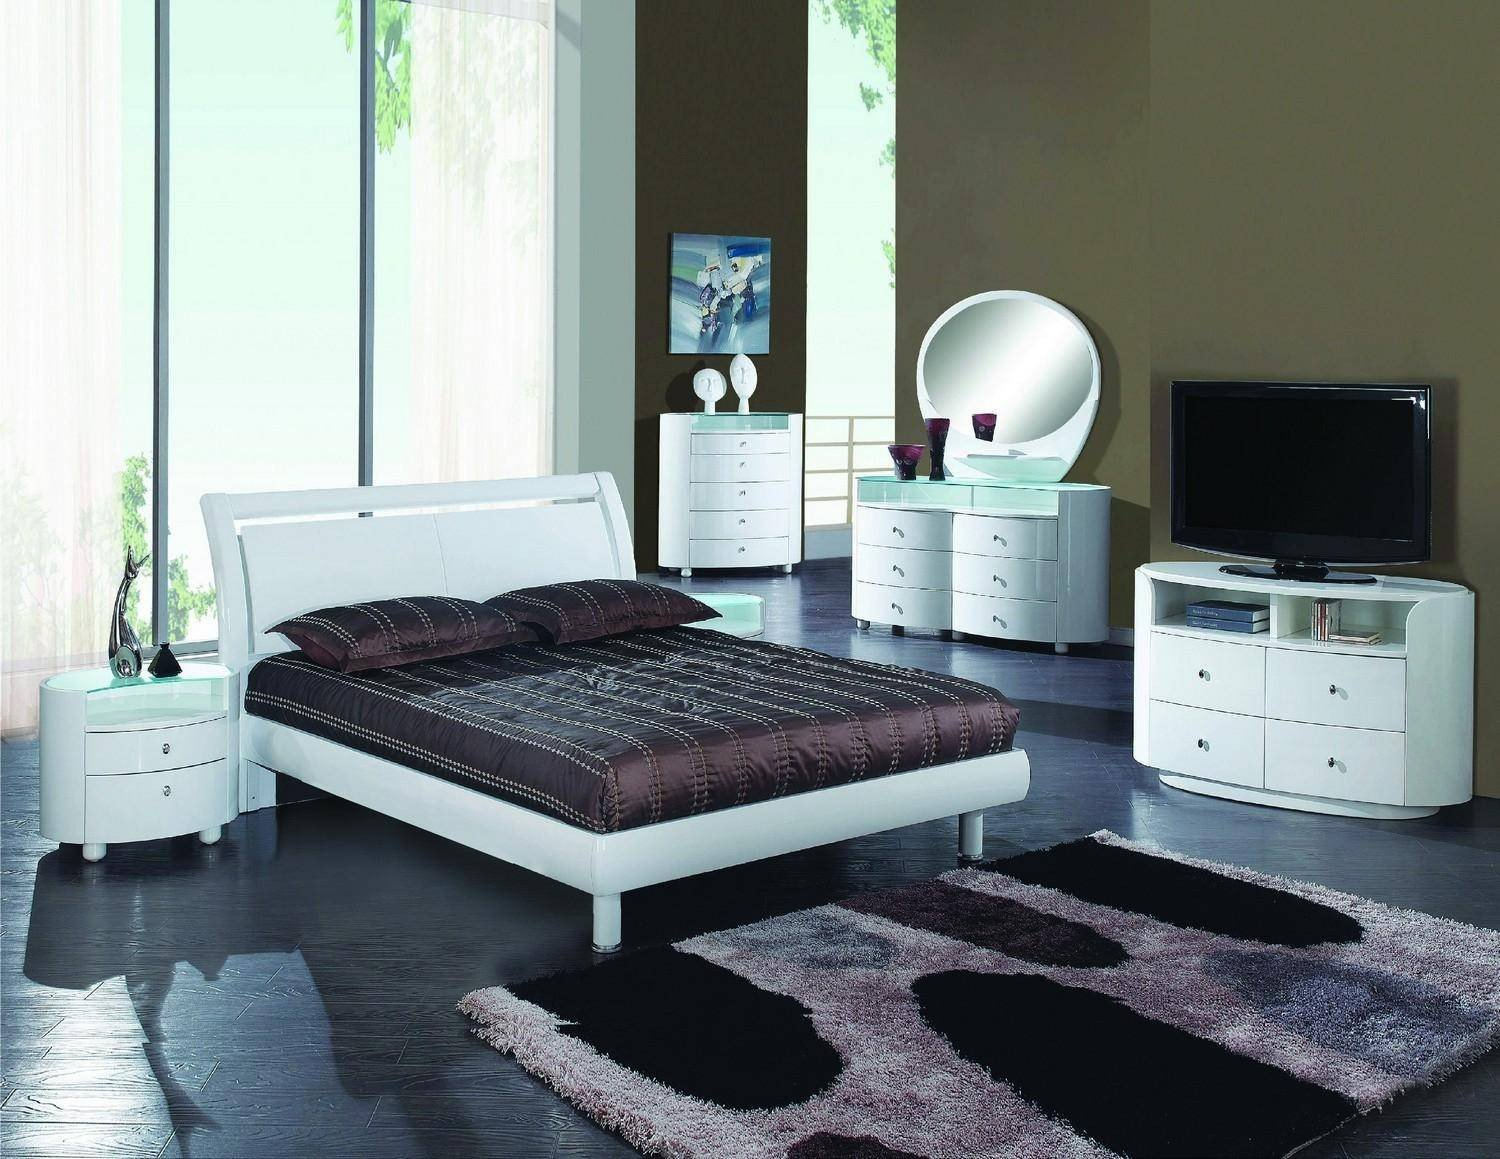 Monte Carlo Bedroom Set Awesome Contemporary White High Gloss Finish Queen Bedroom Set 5pcs